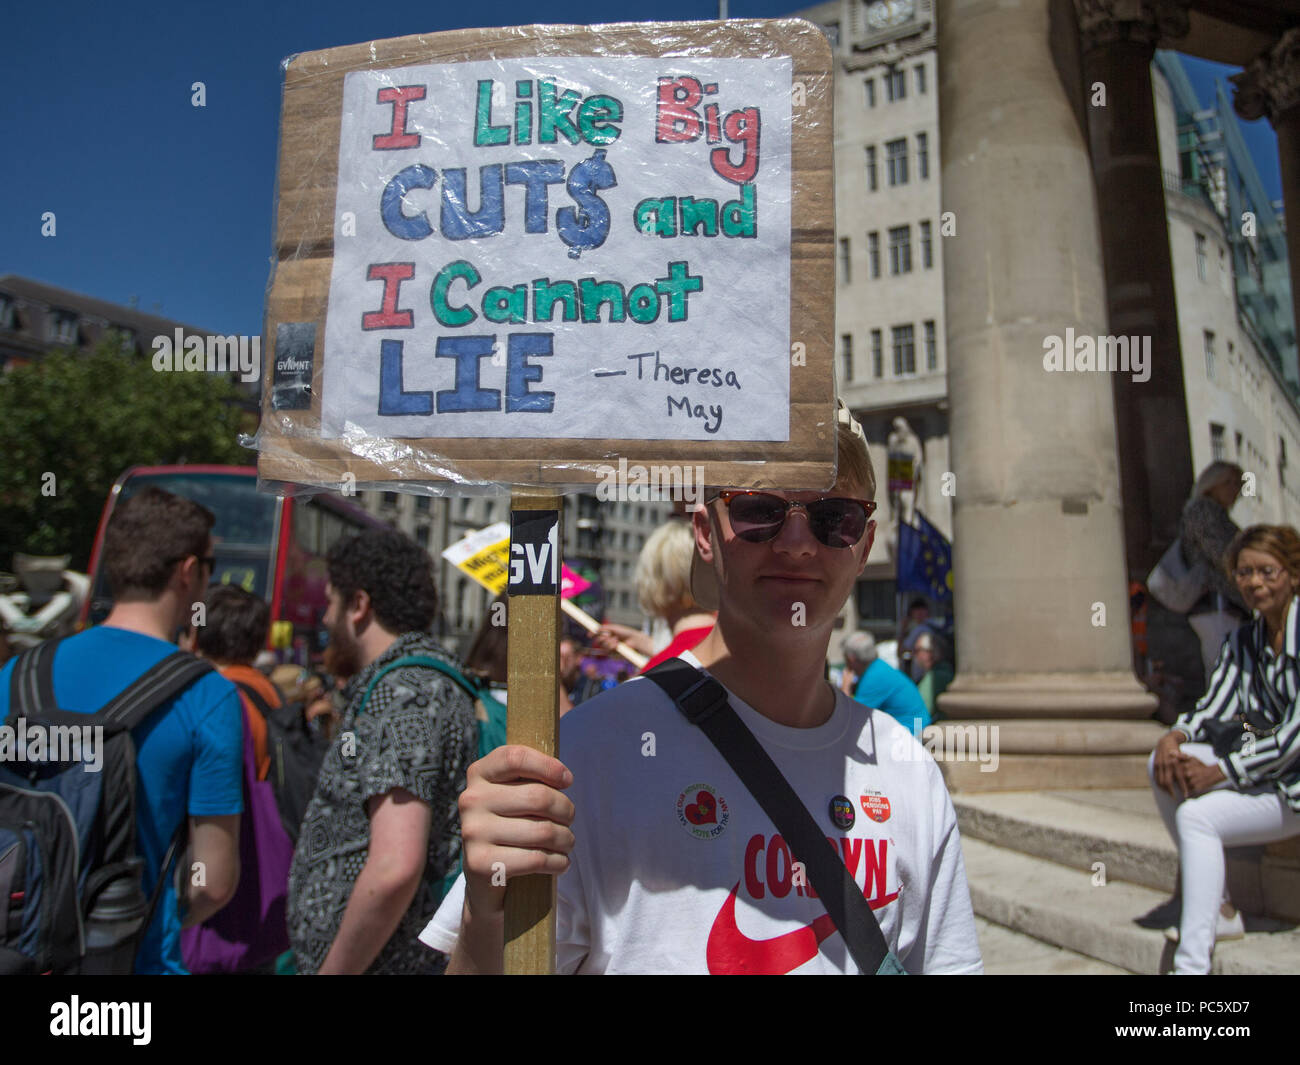 Tens of thousands of people join a huge demonstration to mark the 70th anniversary of the National Health Service.  Featuring: Atmosphere, View Where: London, England, United Kingdom When: 30 Jun 2018 Credit: Wheatley/WENN - Stock Image